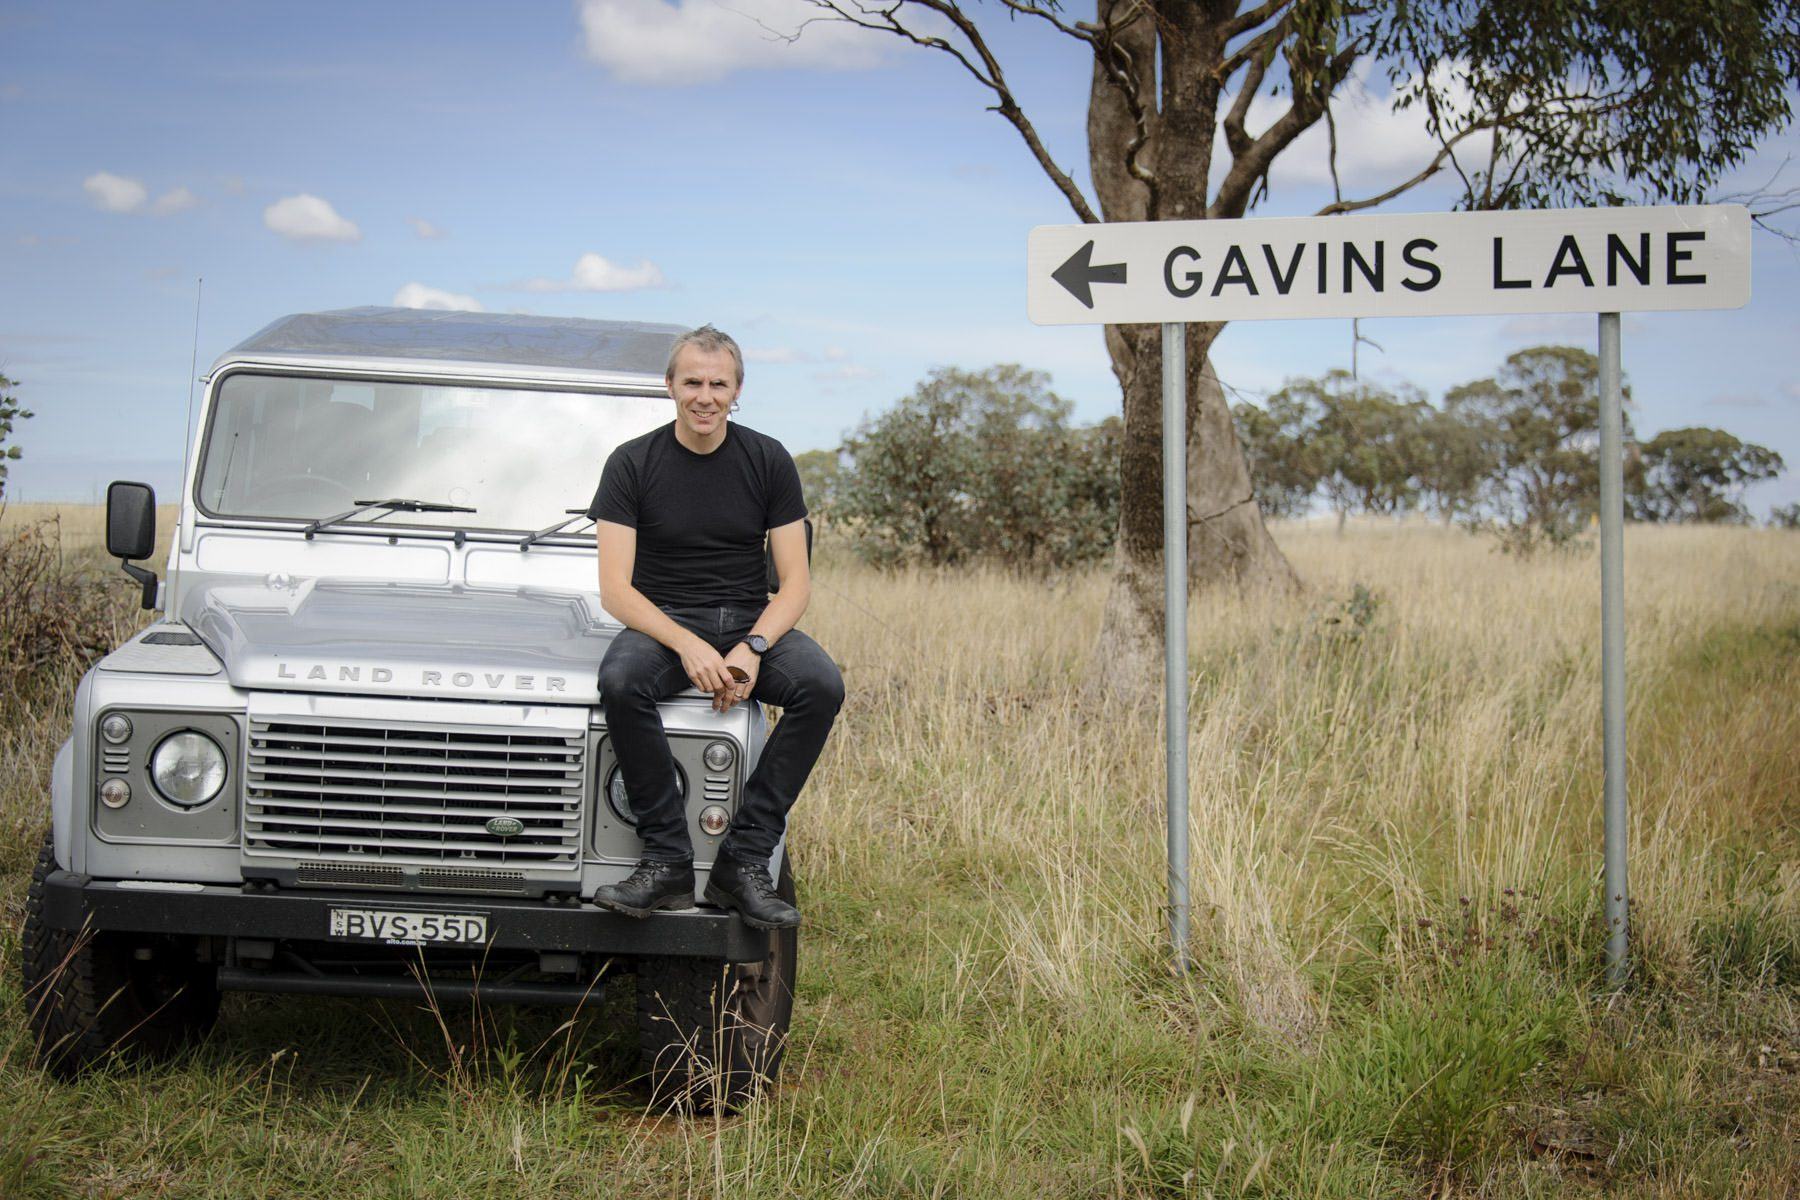 Commercial photography by Sydney photographer Gavin Jowitt